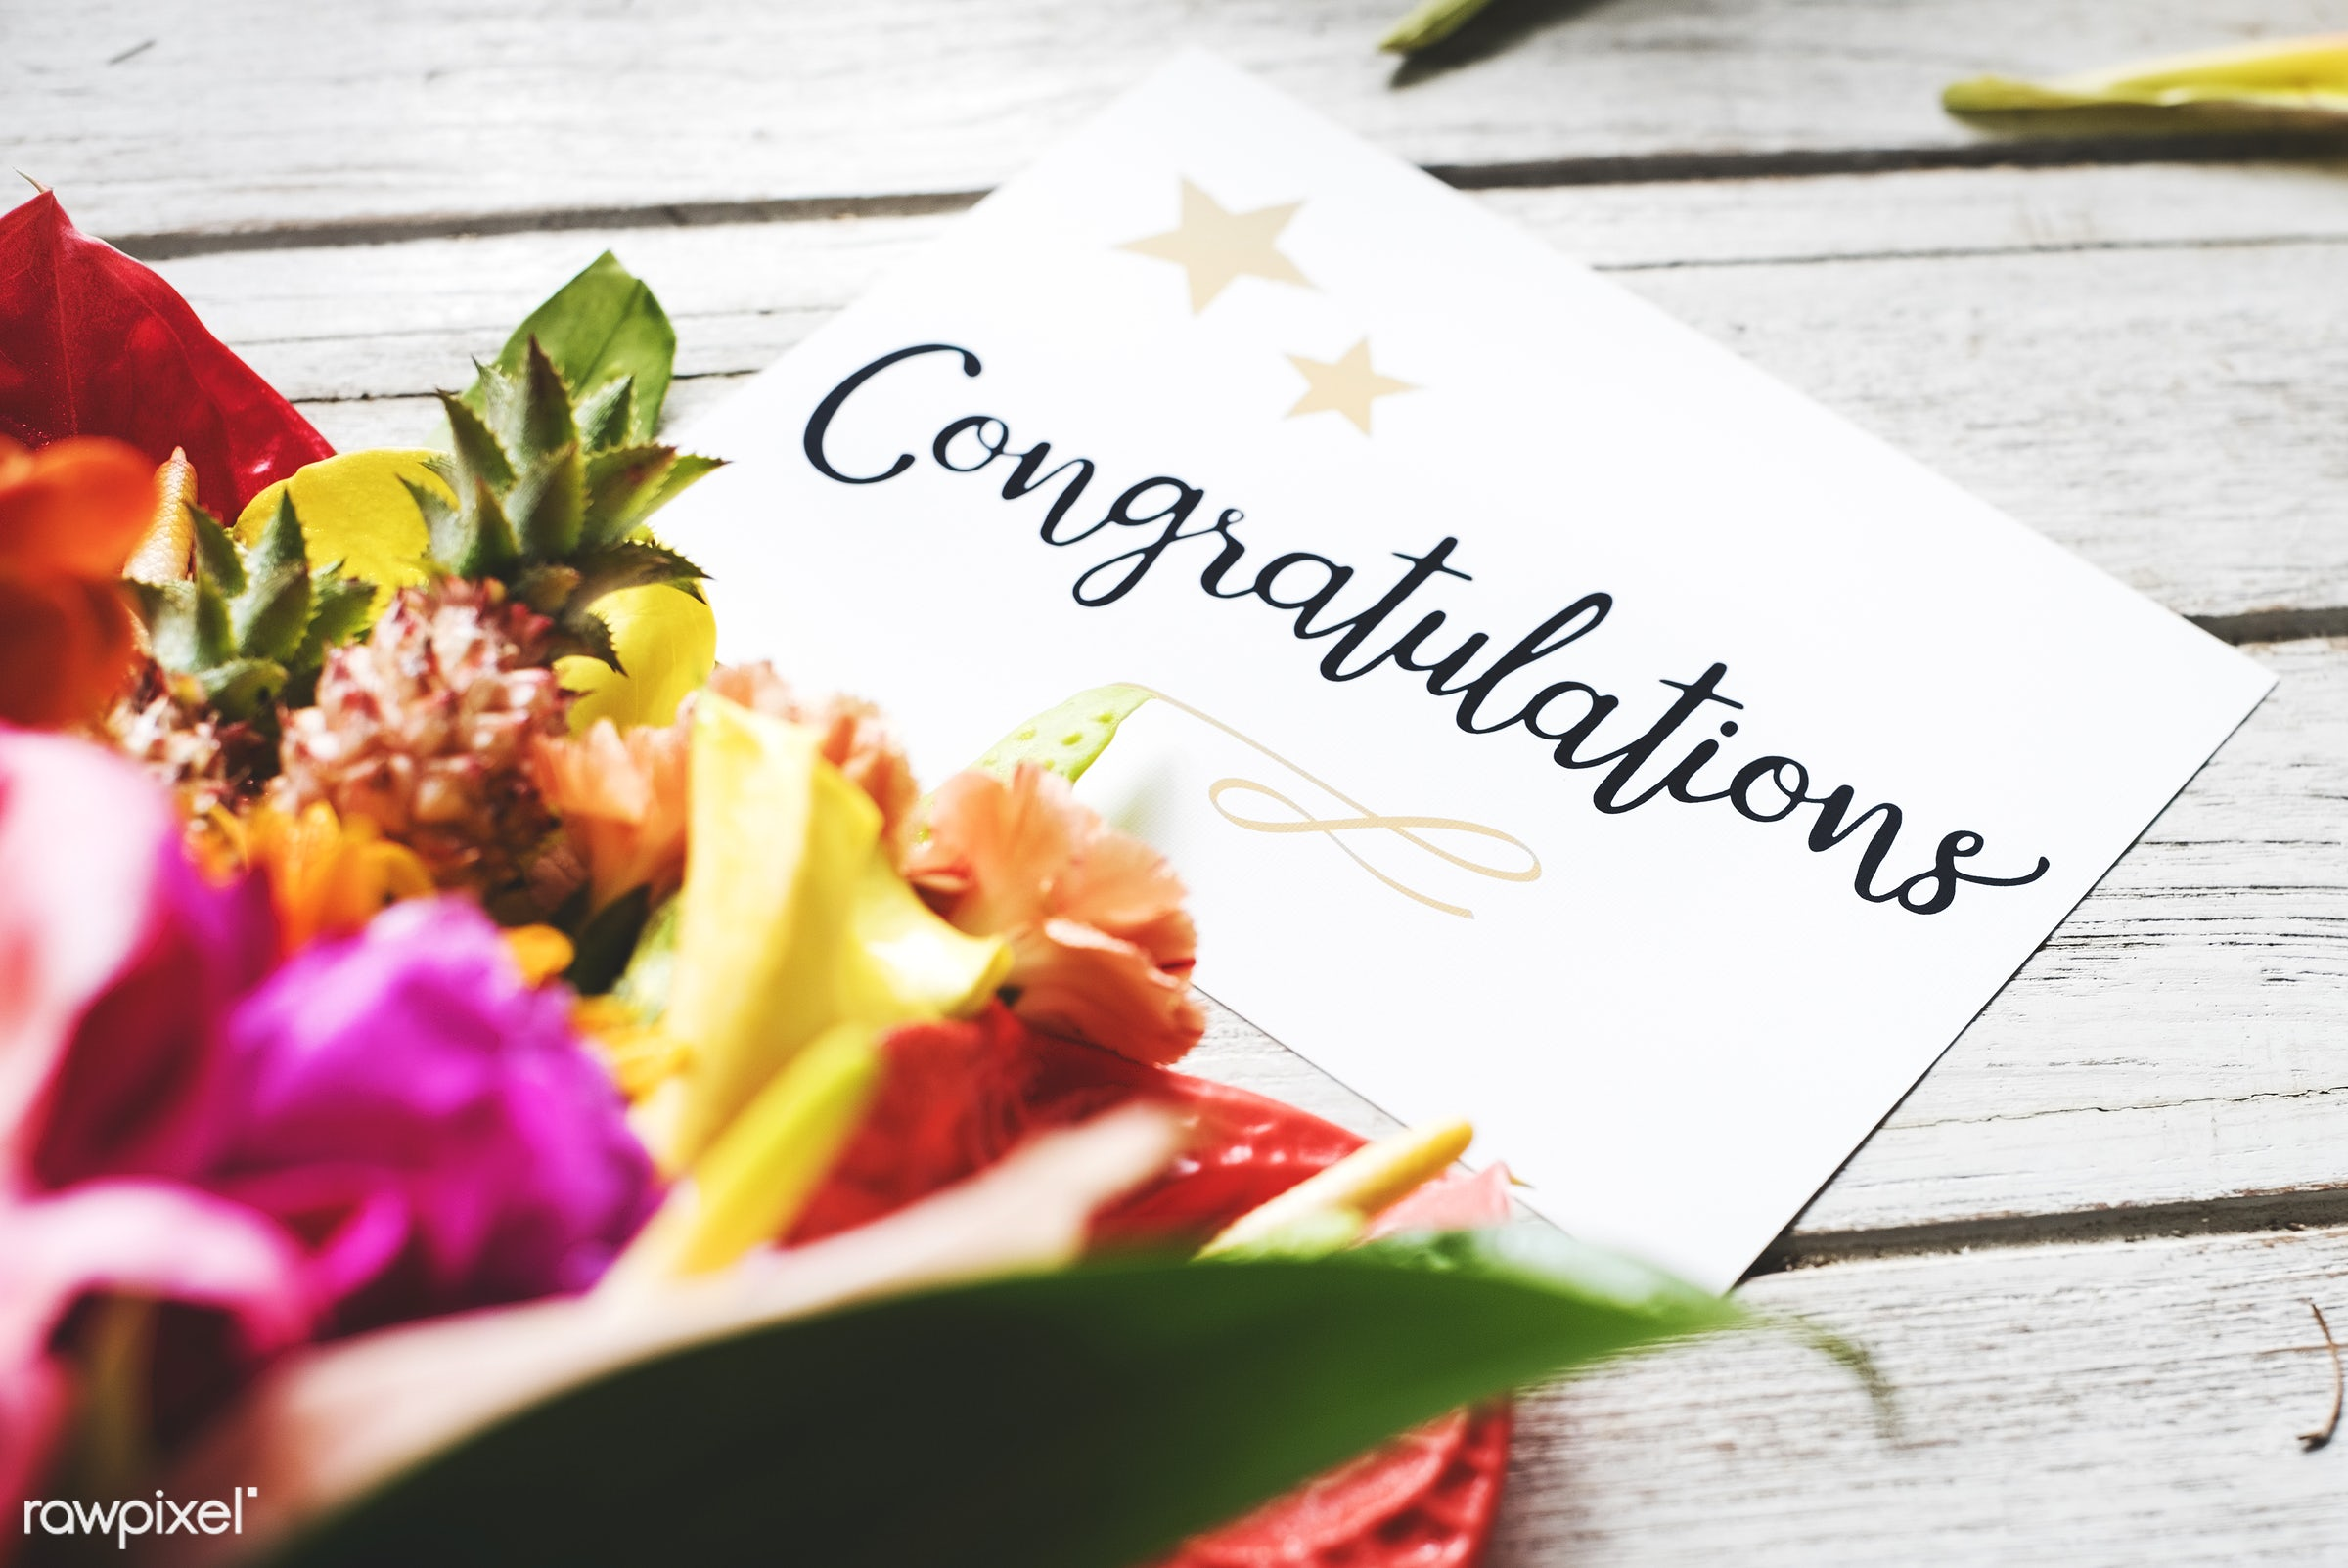 expression, bouquet, congratulations, leaves, congrats, card, cheerful, flower, victory, achievement, greeting, honor,...